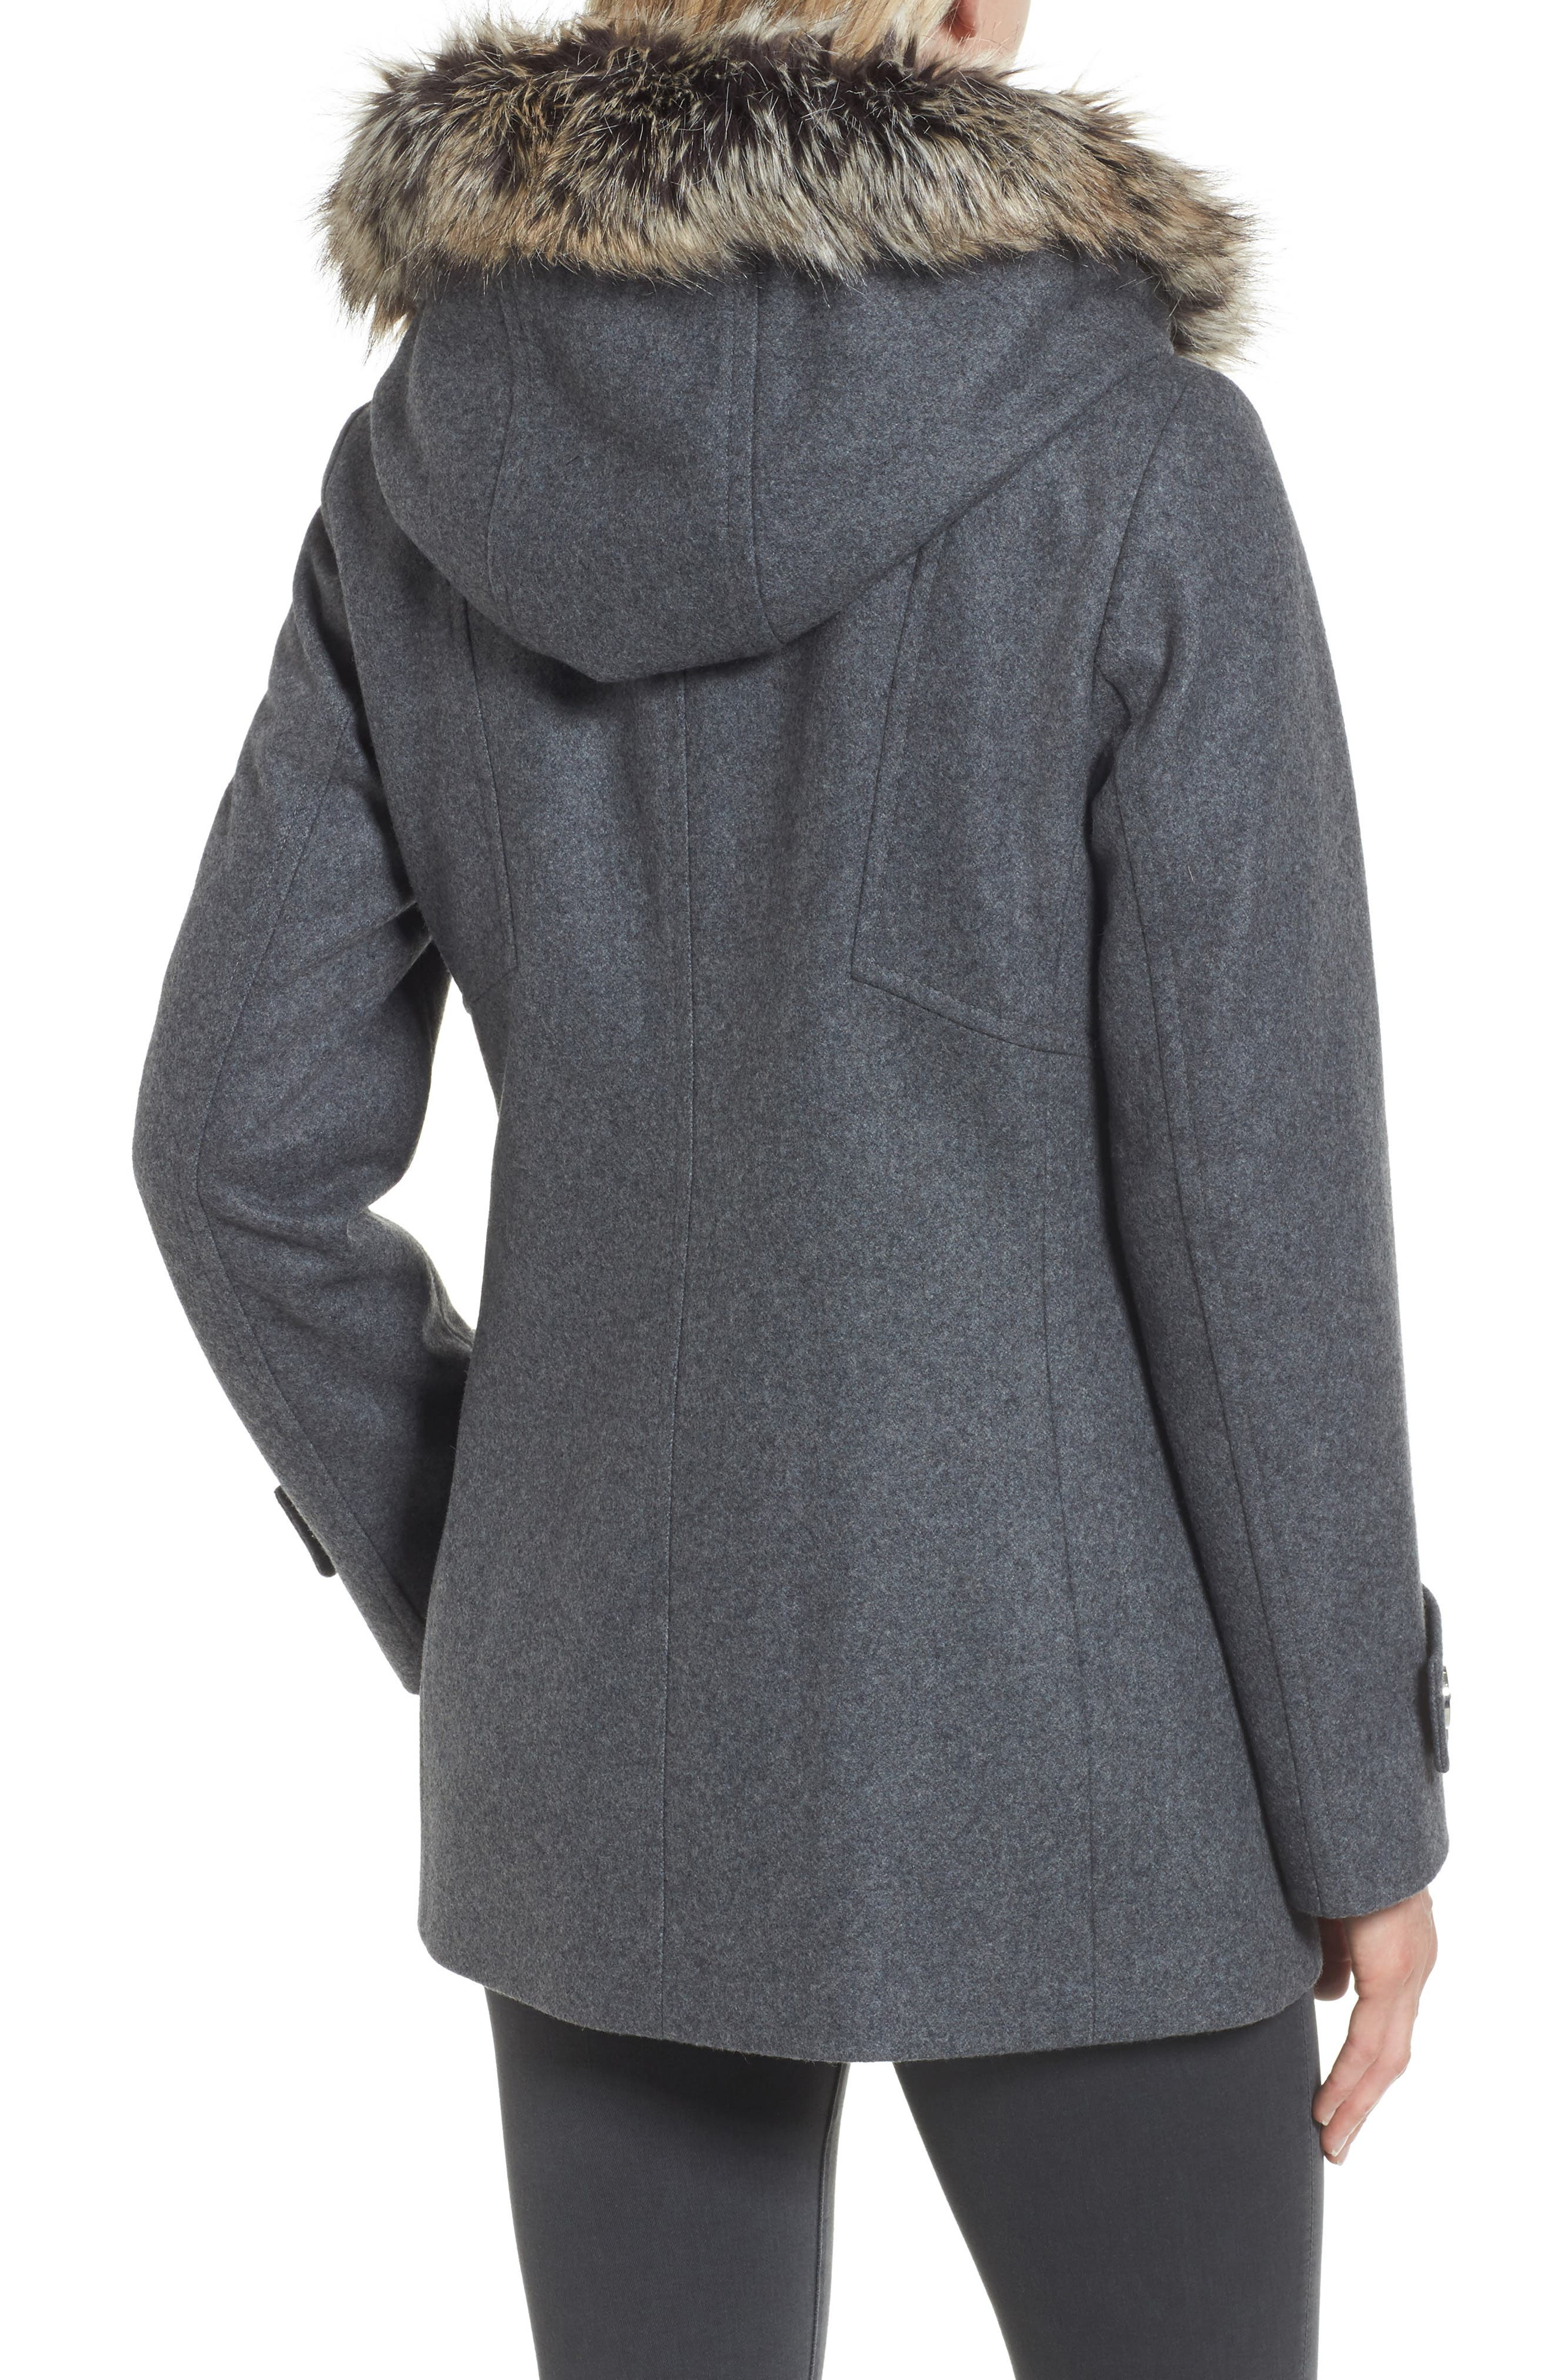 Peacoat with Faux Fur Trim,                             Alternate thumbnail 2, color,                             Medium Grey